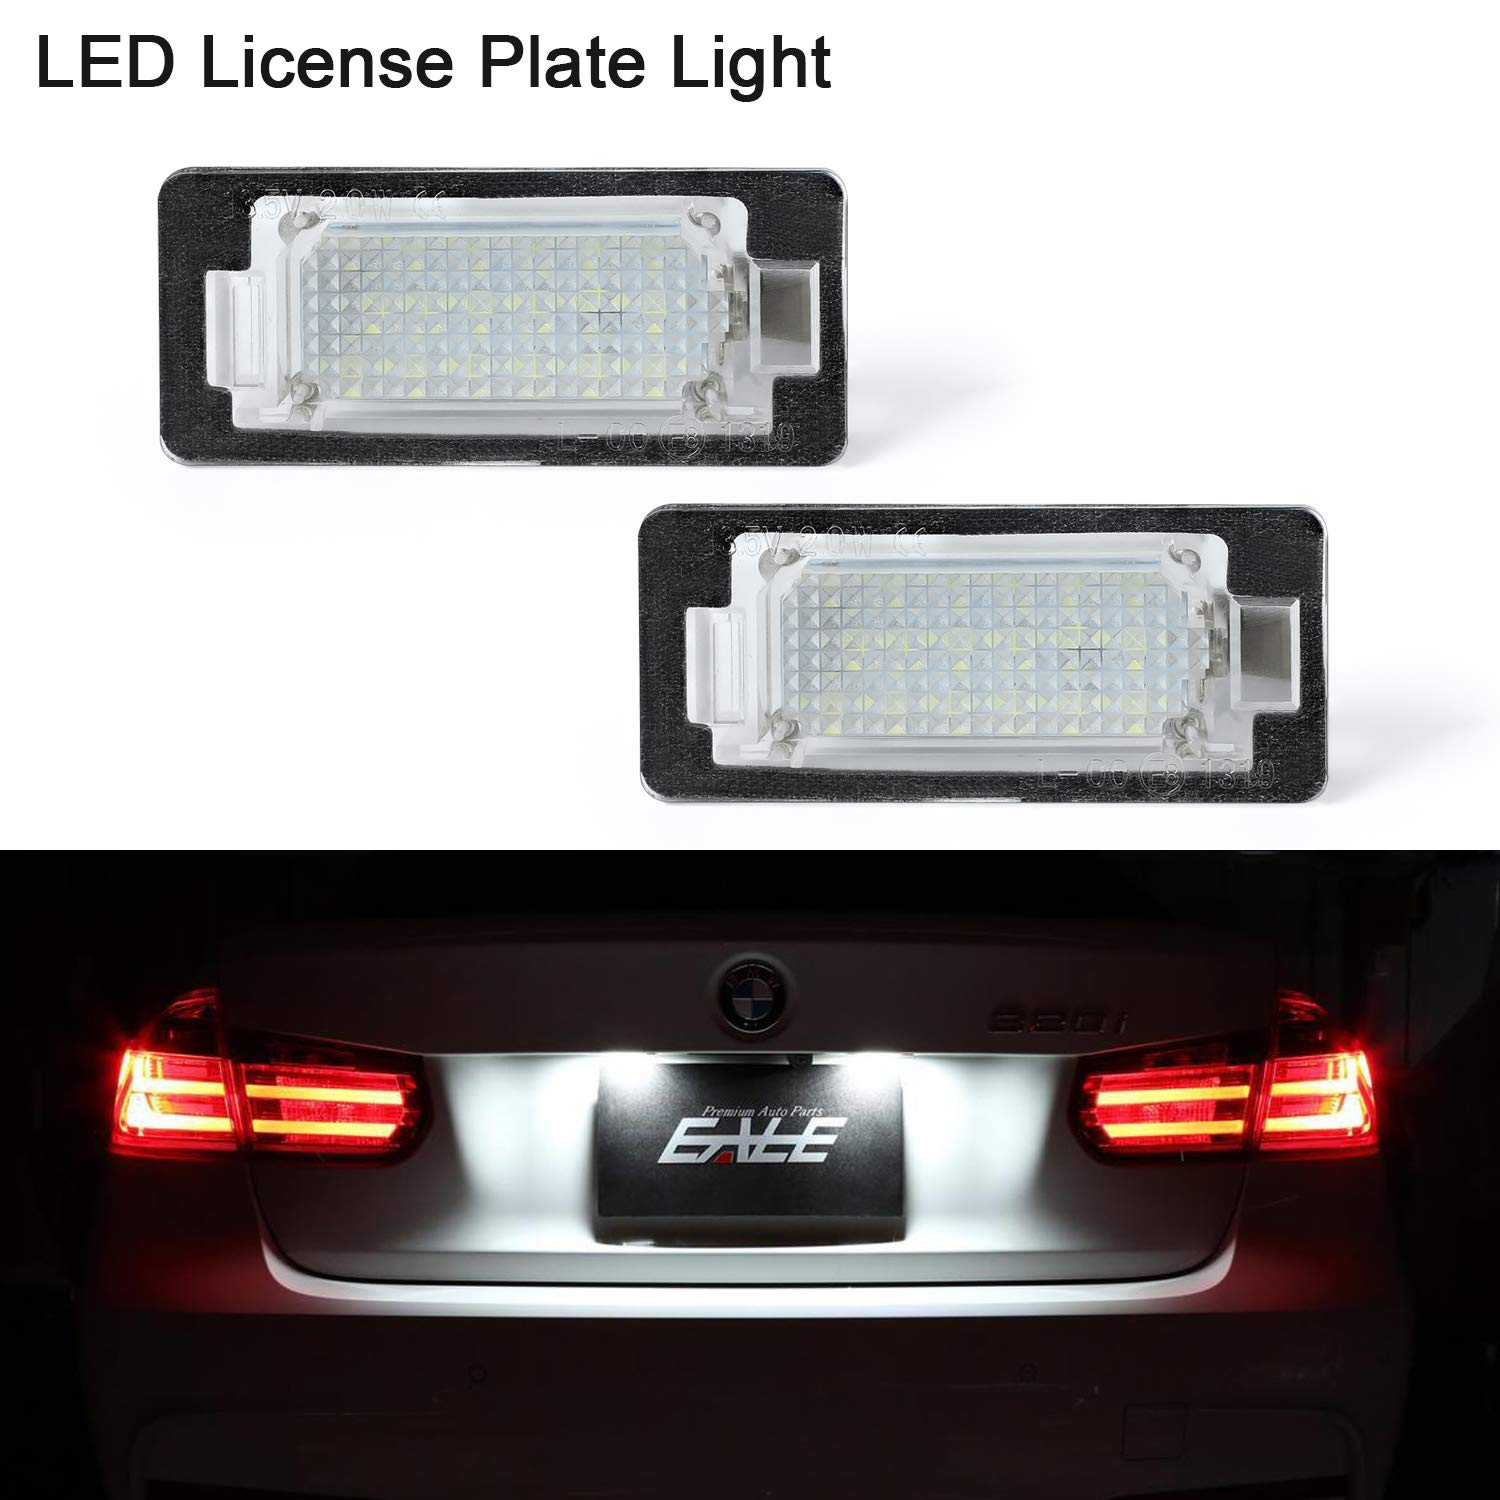 LED Number Plate Light,Gempro 2 Pack 18 SMD LED Lights with Built-In  CAN-bus Resistor and Error Free Waterproof Energy Saving License Plate  Light